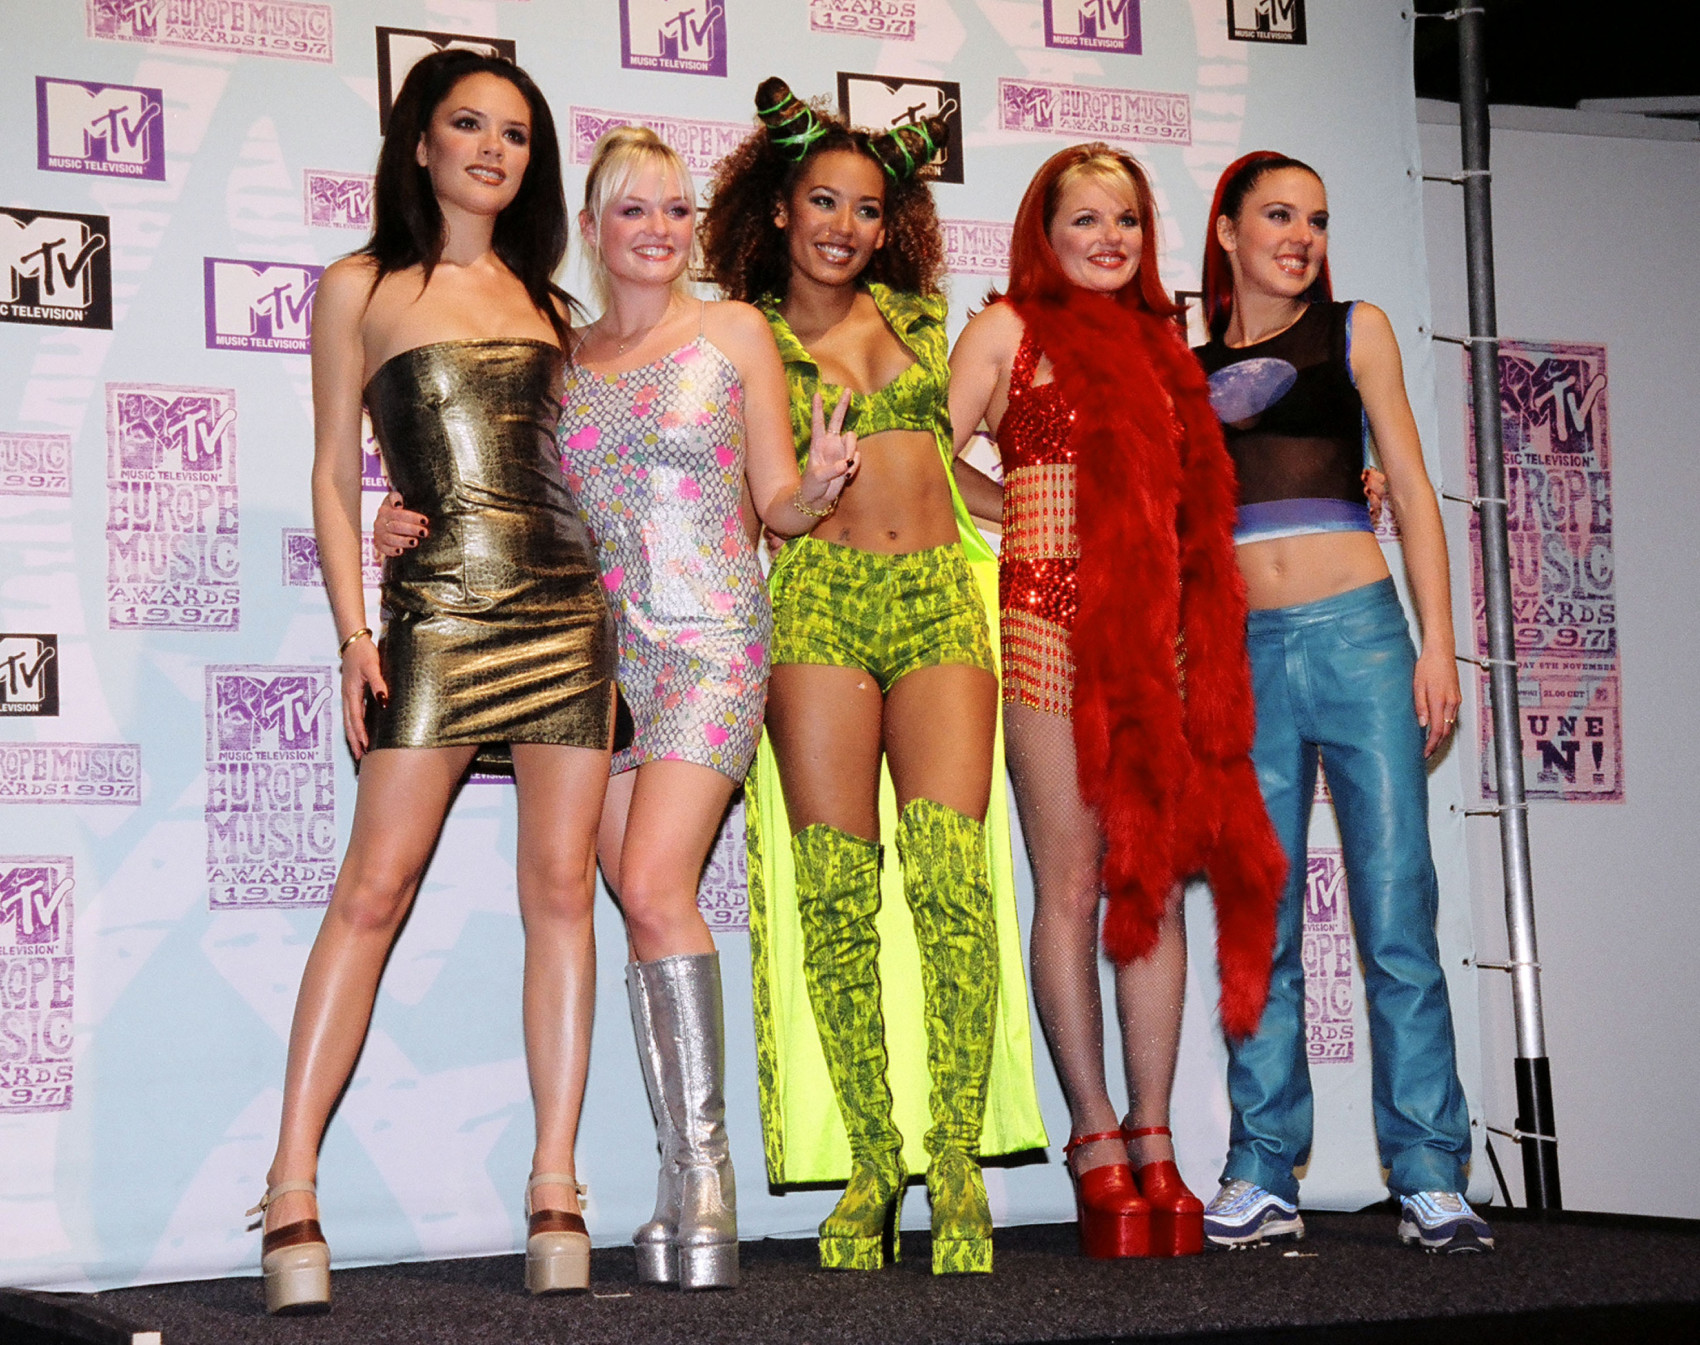 Victoria Beckham, Mel C, Emma Bunton, Geri Halliwell and Mel B from The Spice Girls (Photo by Jeff Kravitz/FilmMagic)